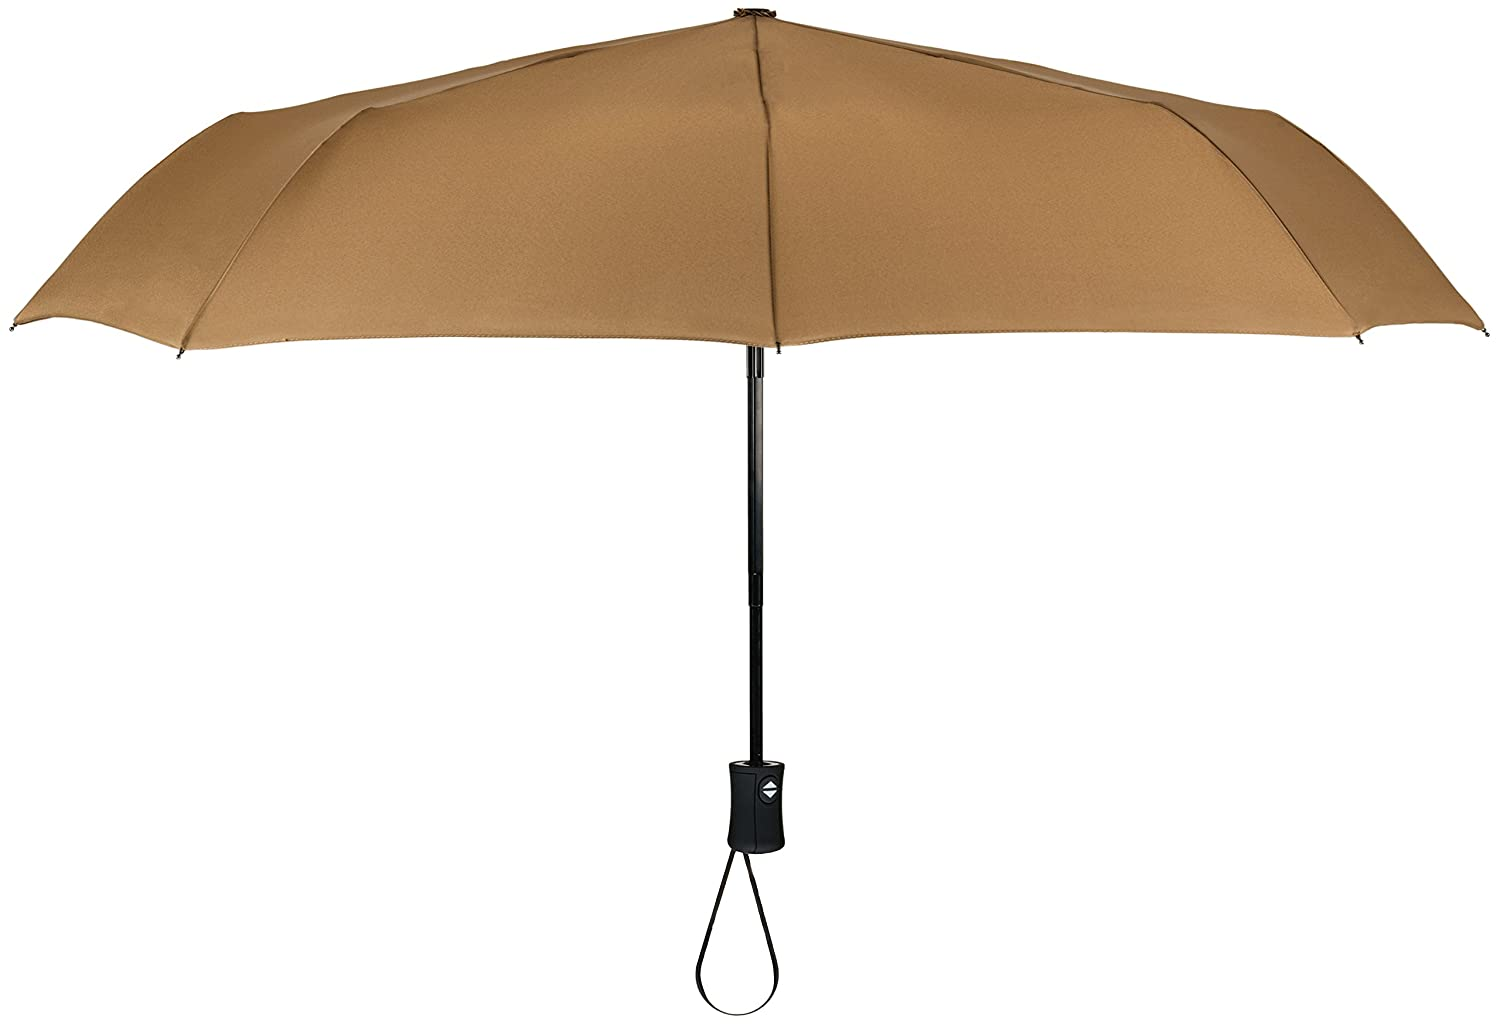 Crown Coast Windproof Umbrella Up To 95 kmph - Compact, Automatic Open // Close Travel Umbrellas All Come With A Lifetime Replacement Guarantee /(Camouflage/)